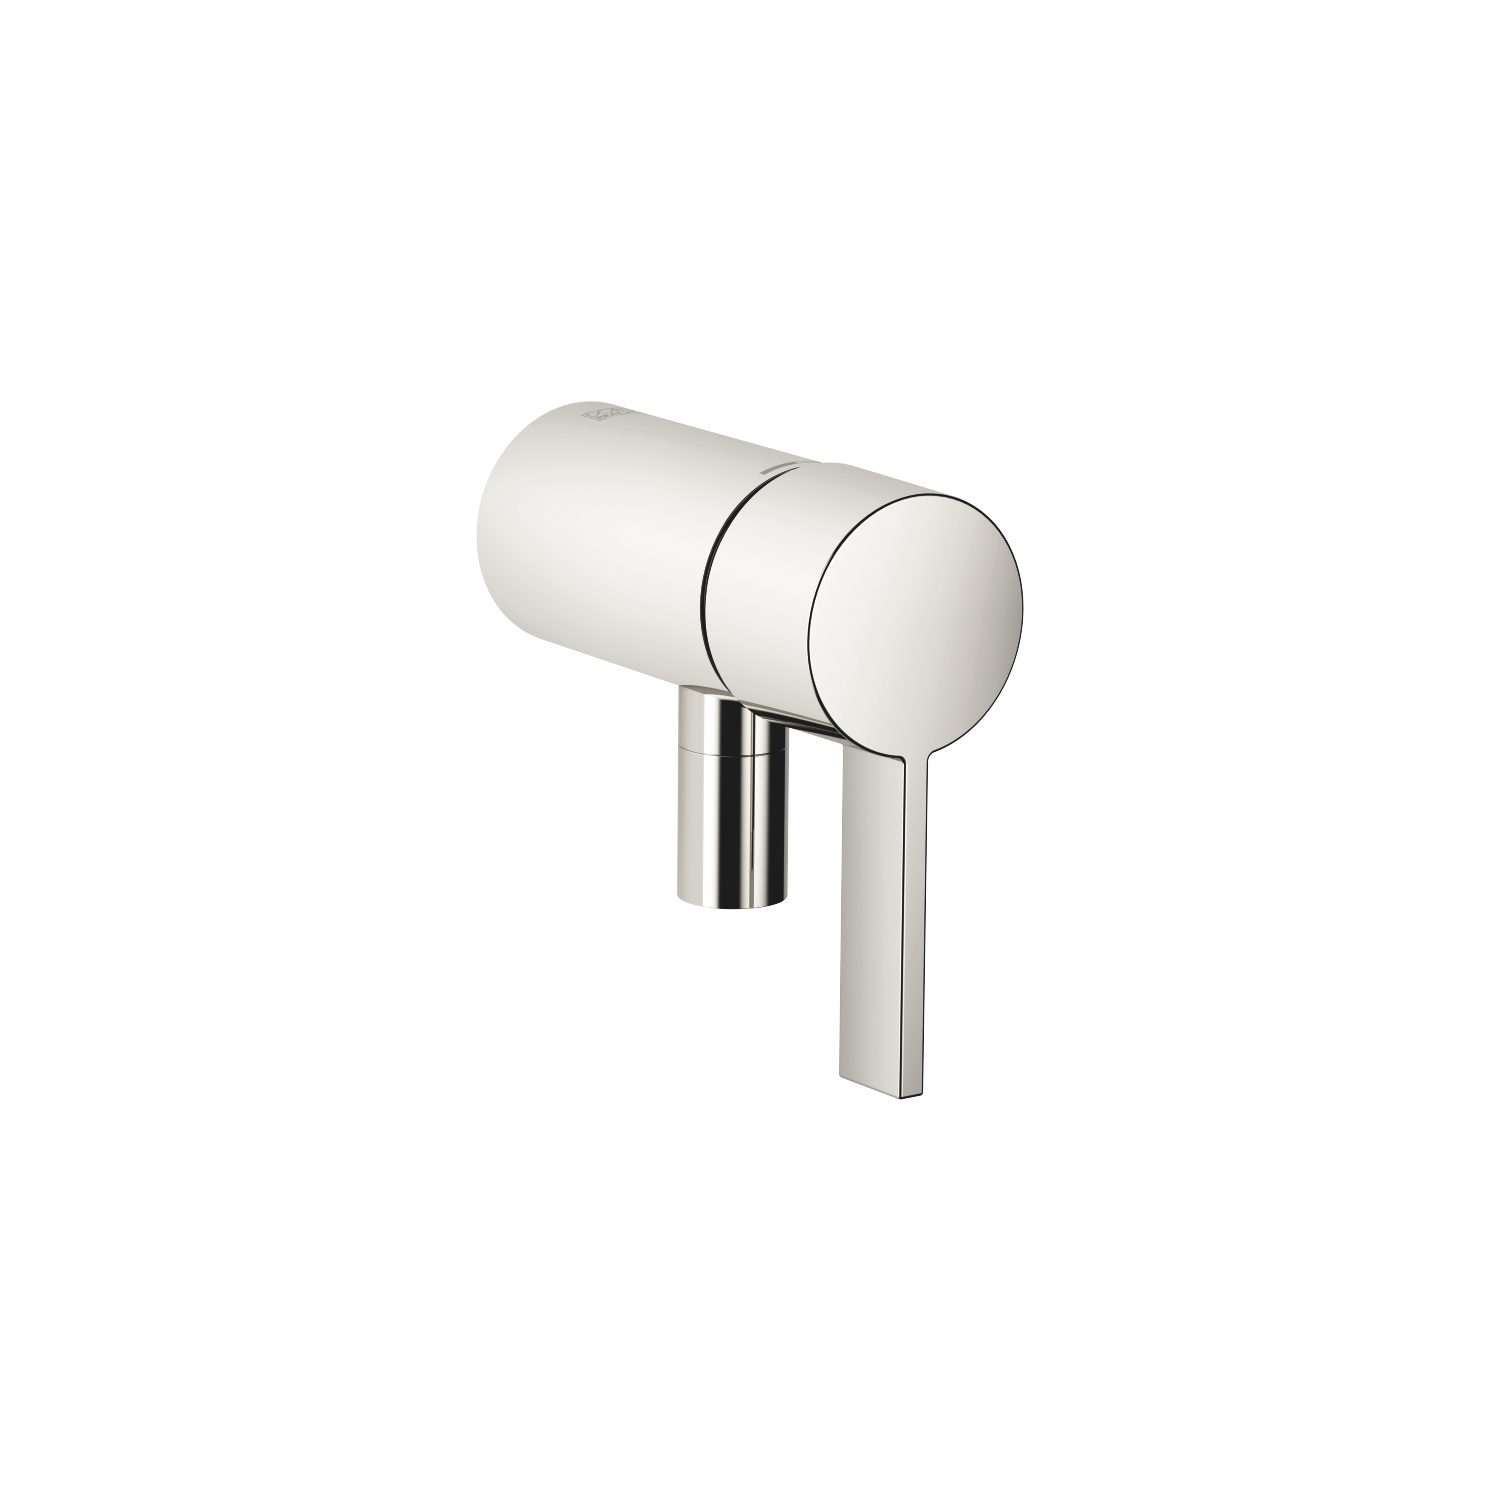 Concealed single-lever mixer with integrated shower connection - platinum